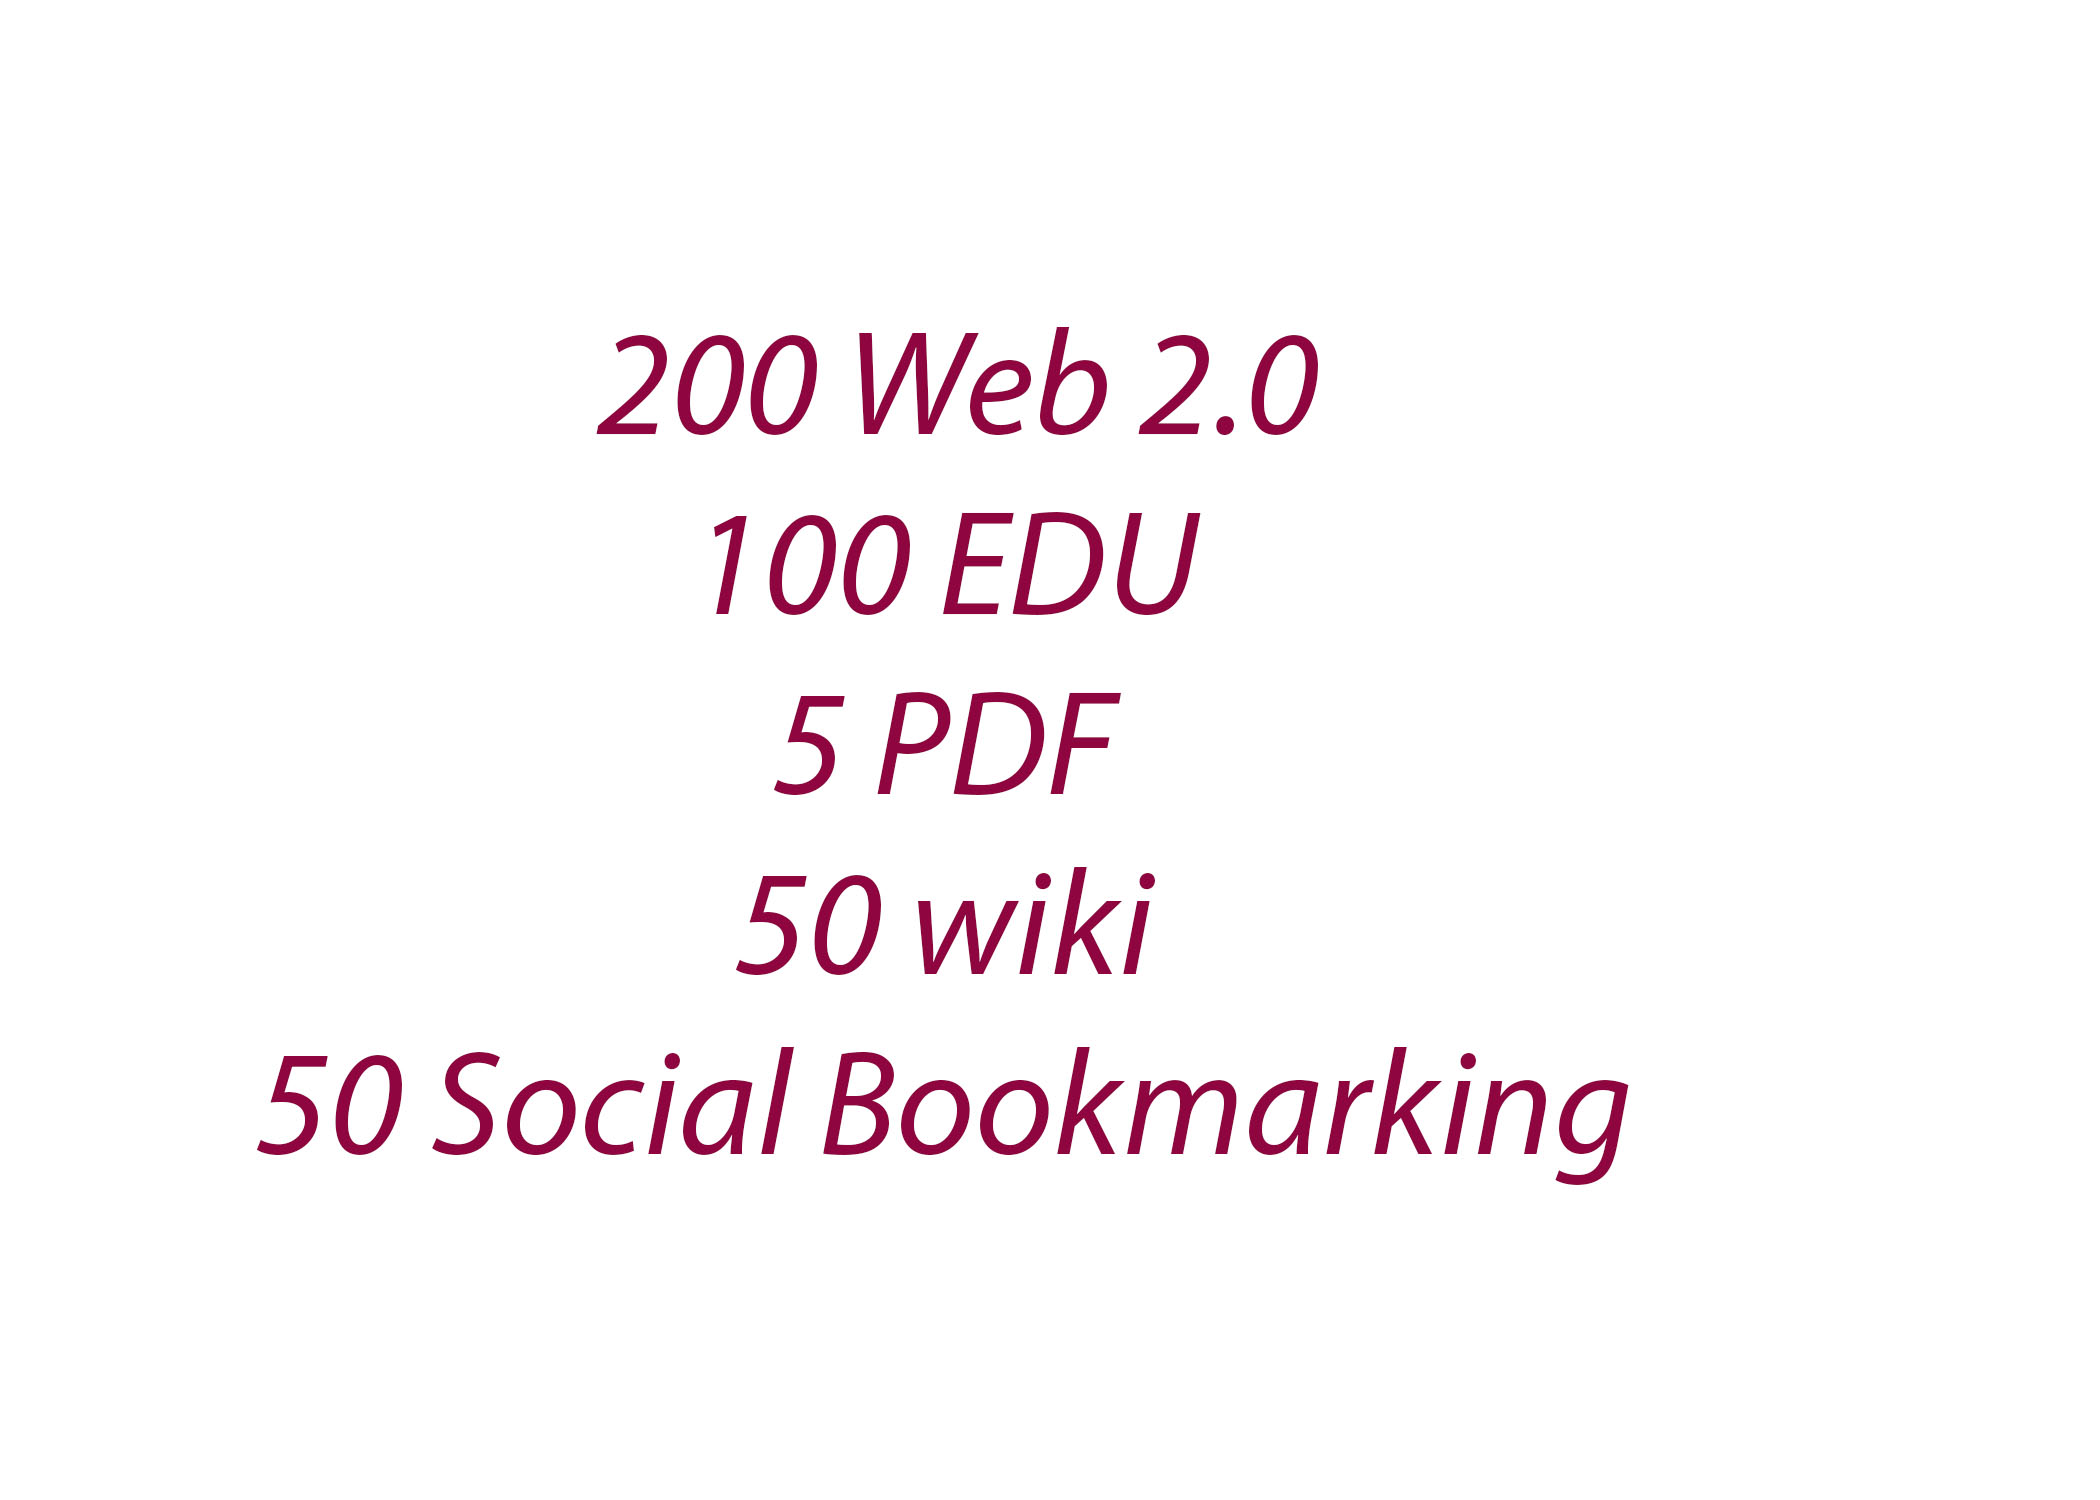 200 Web 2.0 + 20 EDU/GOV + 5 PDF + 50 wiki + 50 social bookmarking